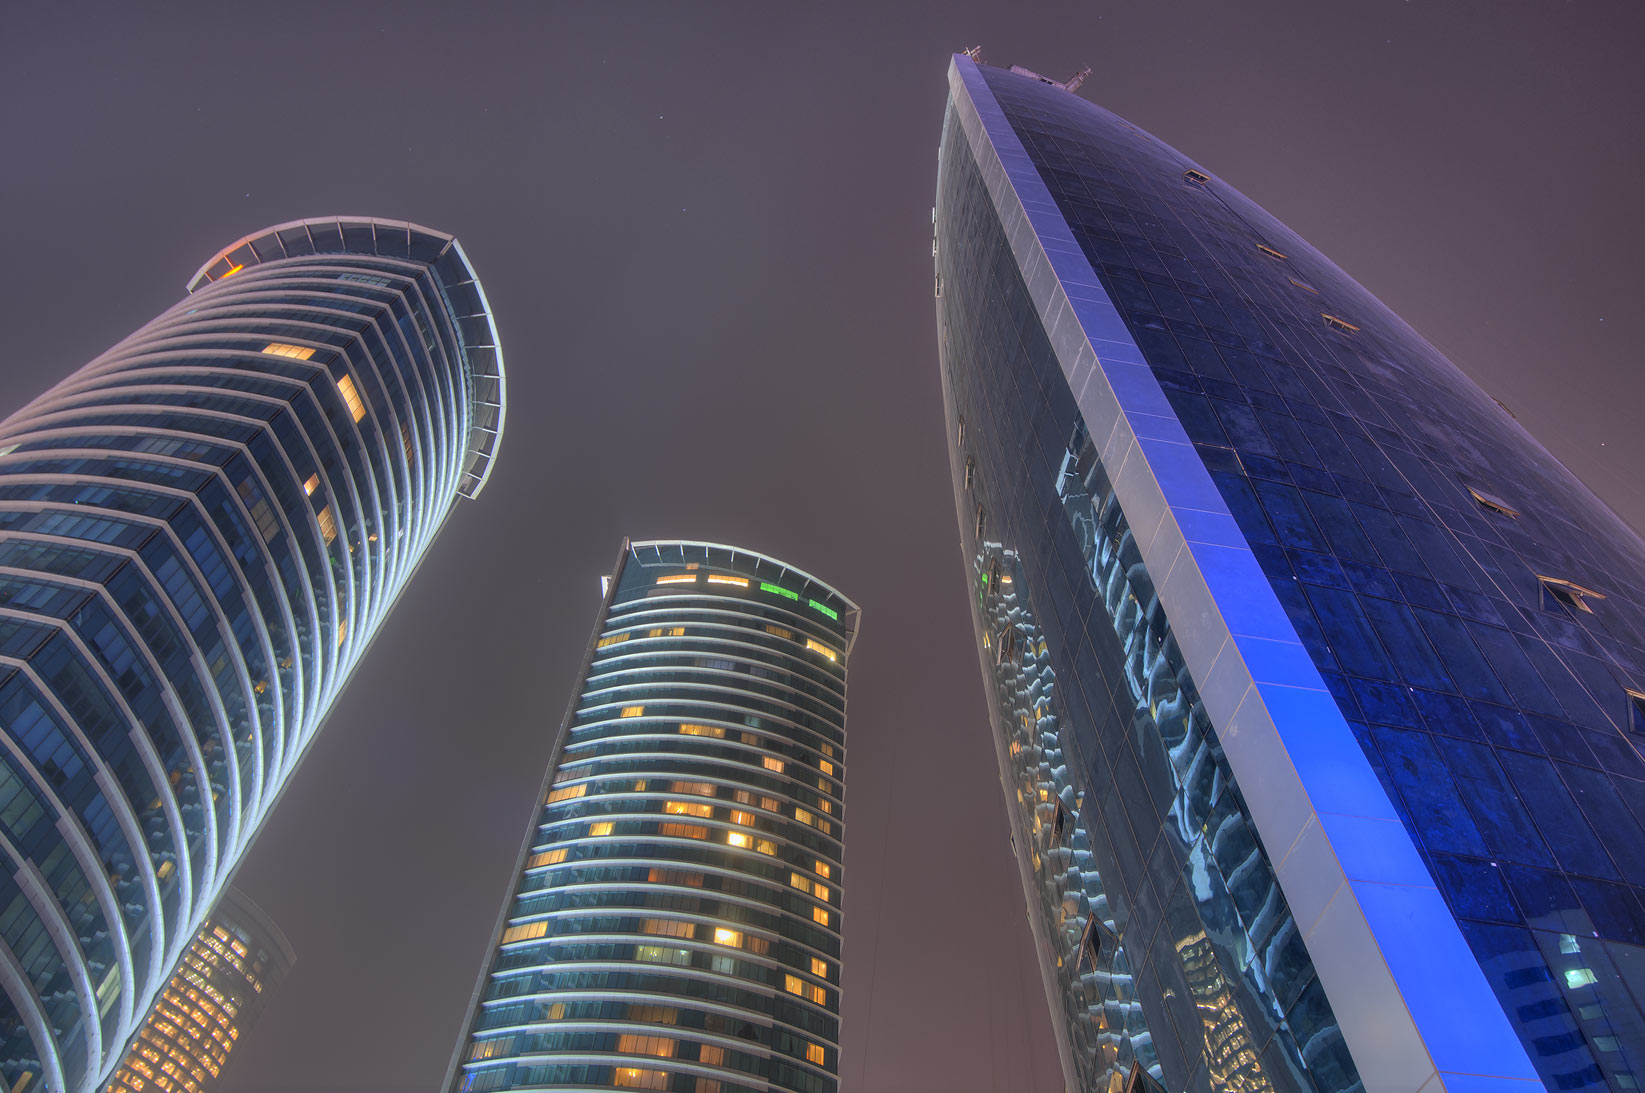 Twin Al Fardan and Woqod towers in West Bay at morning. Doha, Qatar